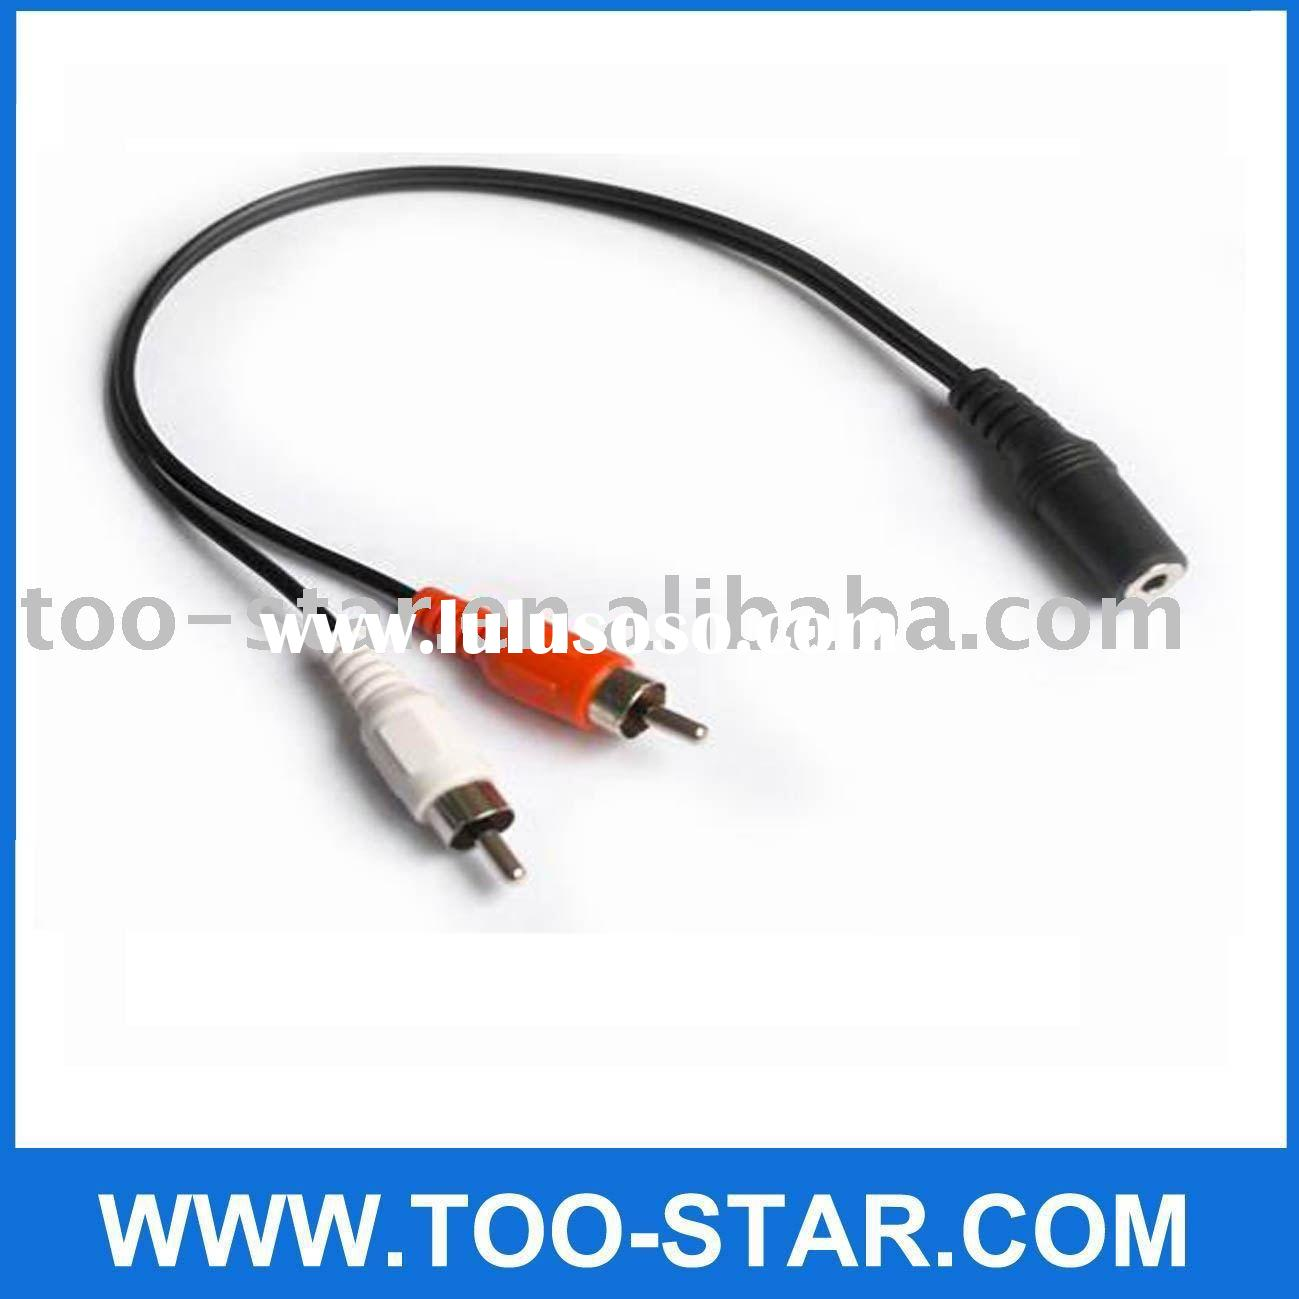 Audio Y Cable Adapter 2 RCA Male to 3.5mm Female Jack